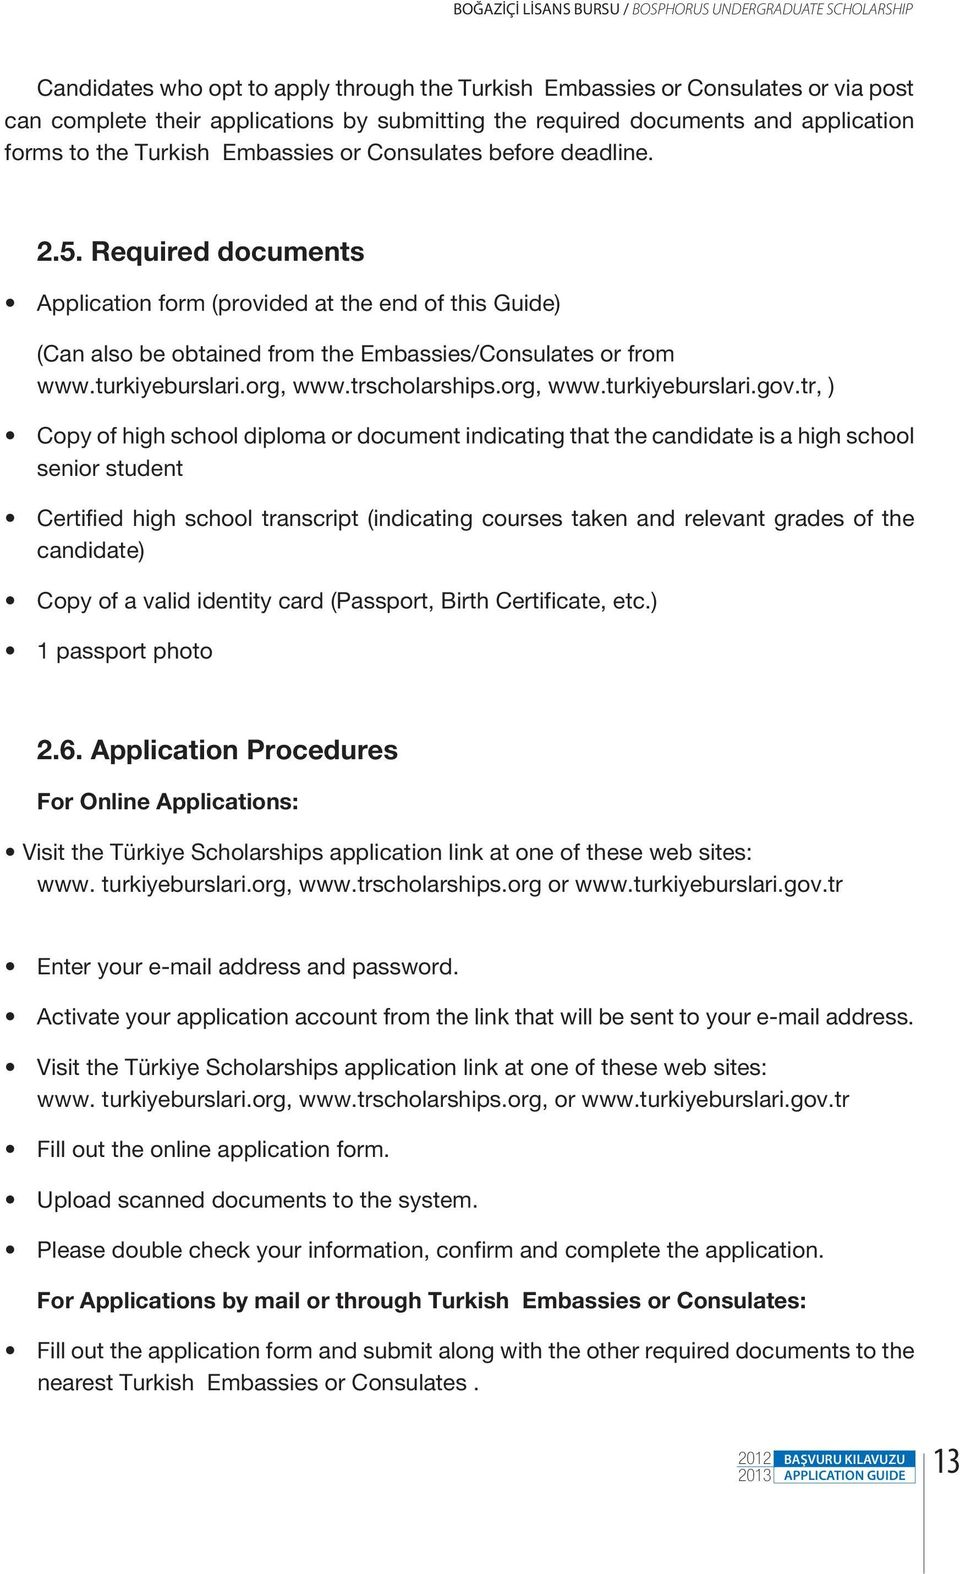 Required documents Application form (provided at the end of this Guide) (Can also be obtained from the Embassies/Consulates or from www.turkiyeburslari.org, www.trscholarships.org, www.turkiyeburslari.gov.